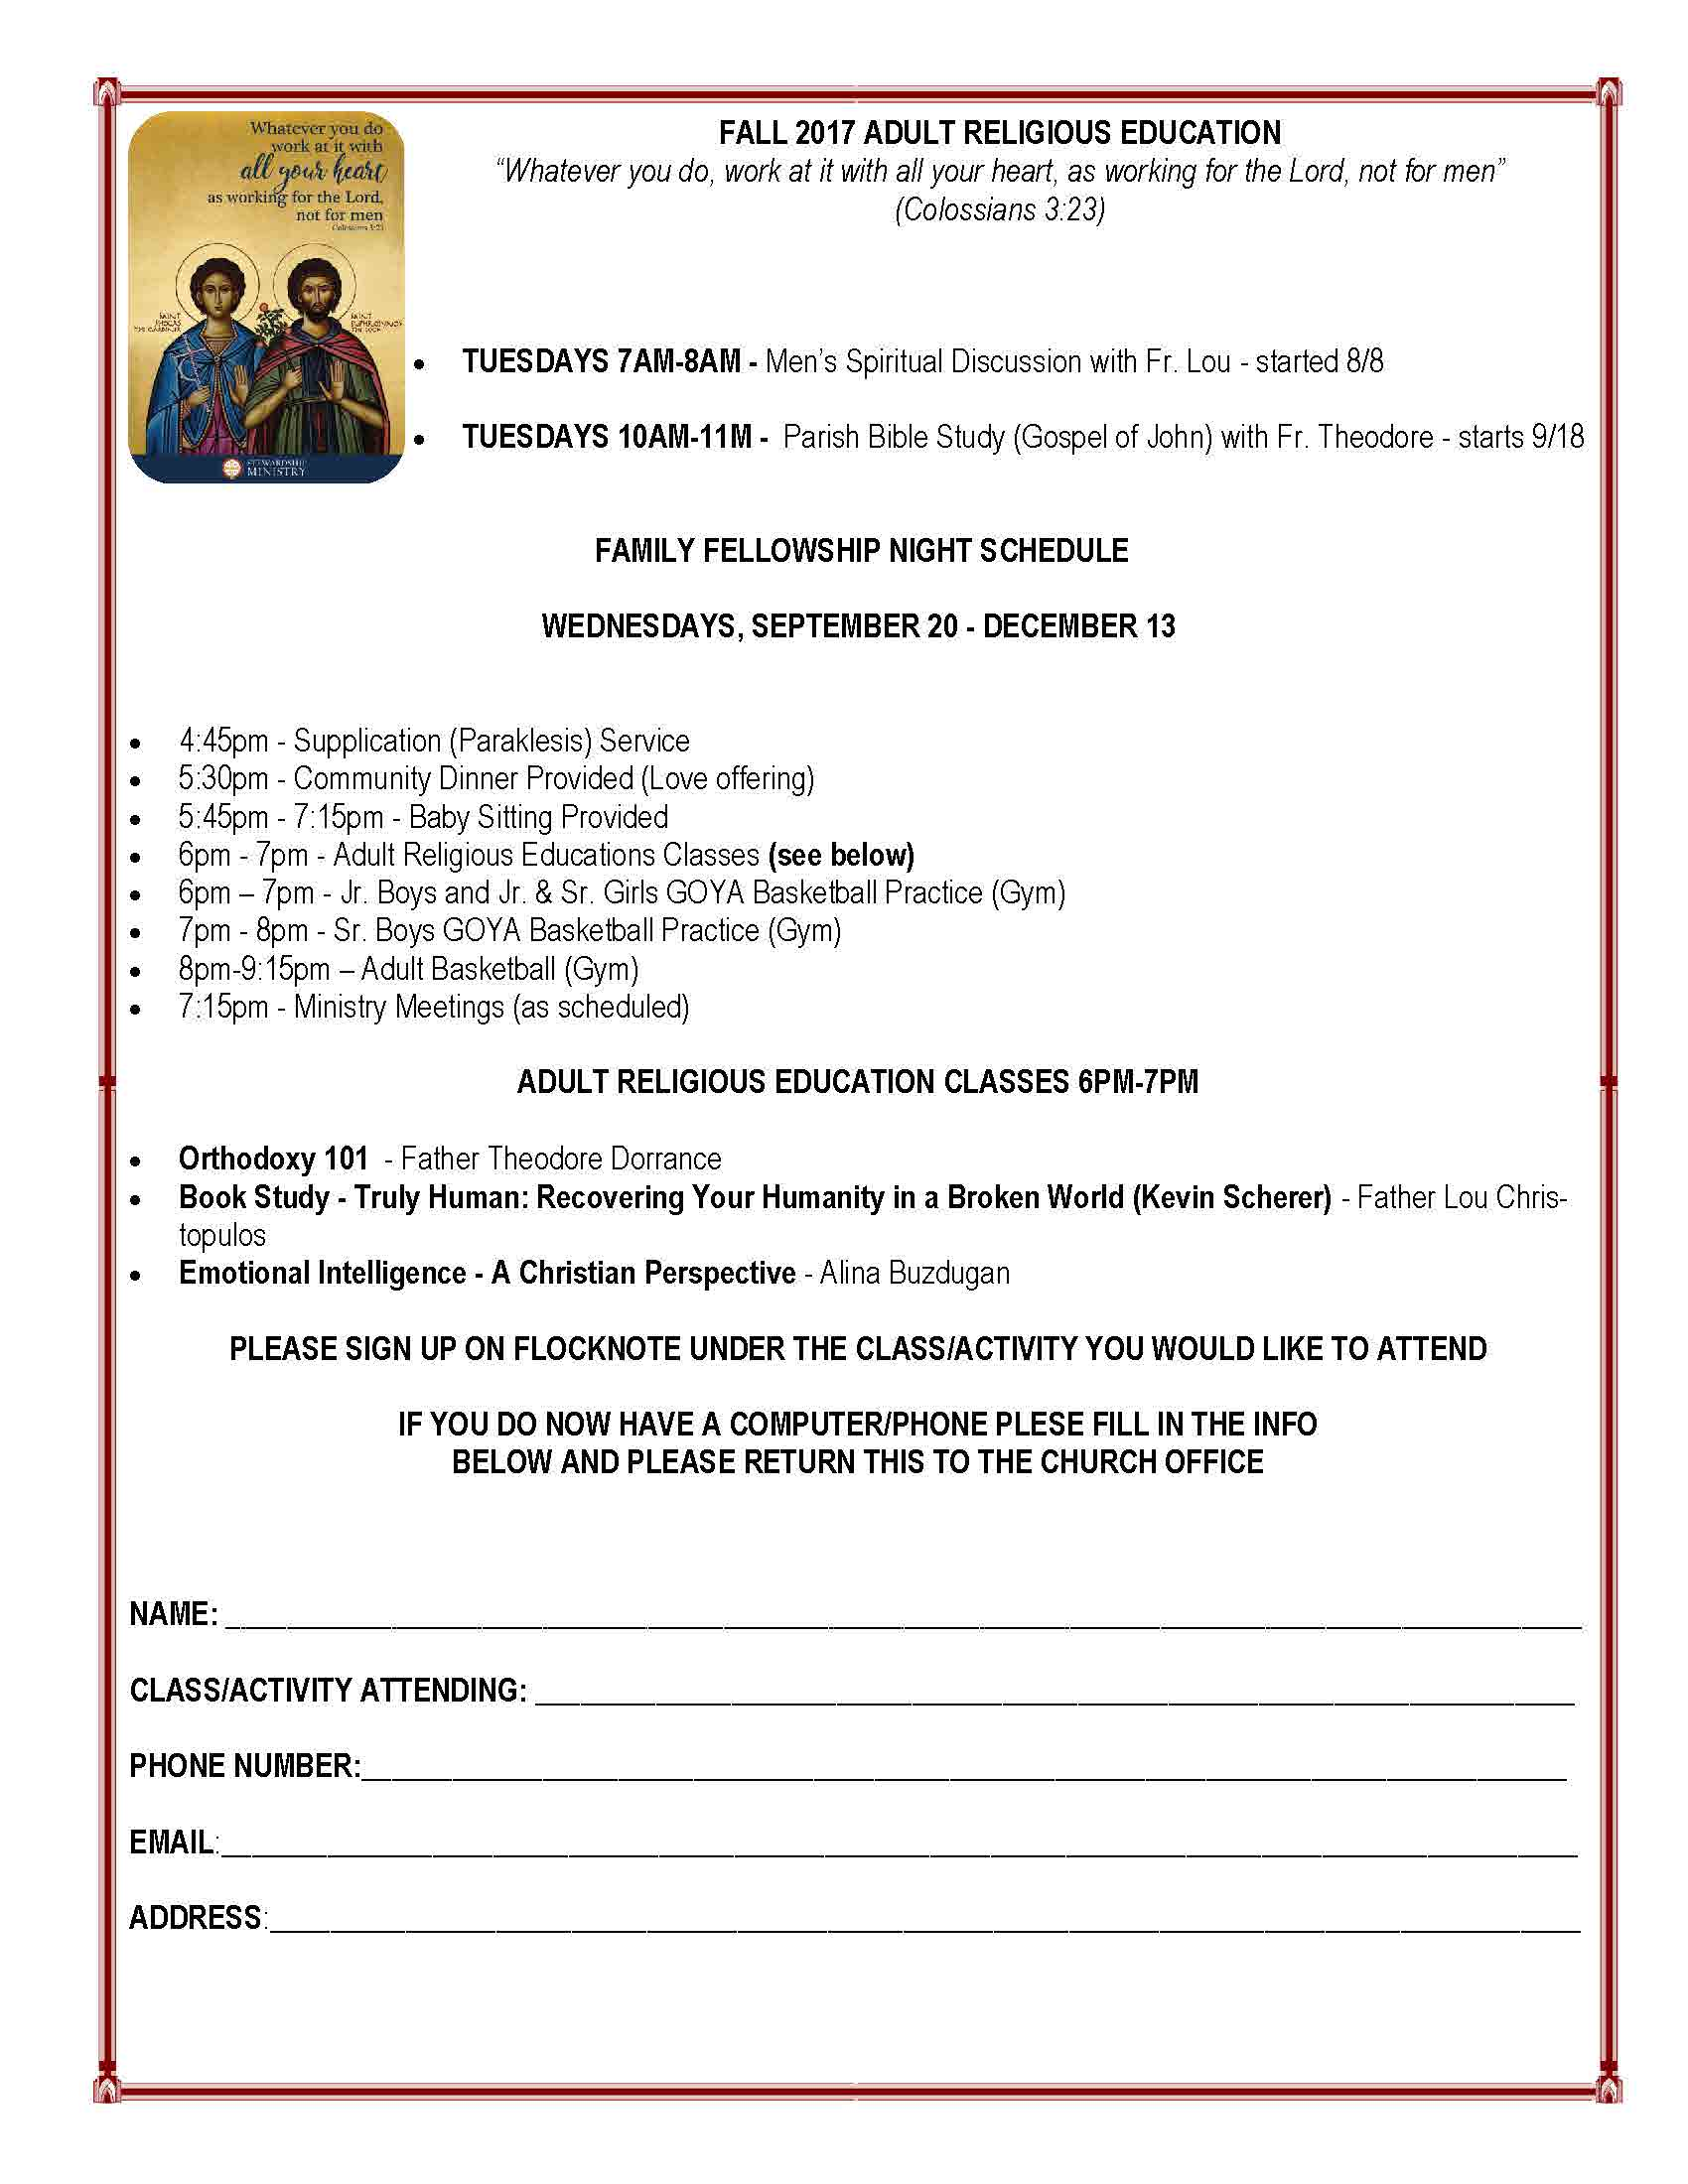 Fellowship Night Schedule and Signup Fall 2017.jpg